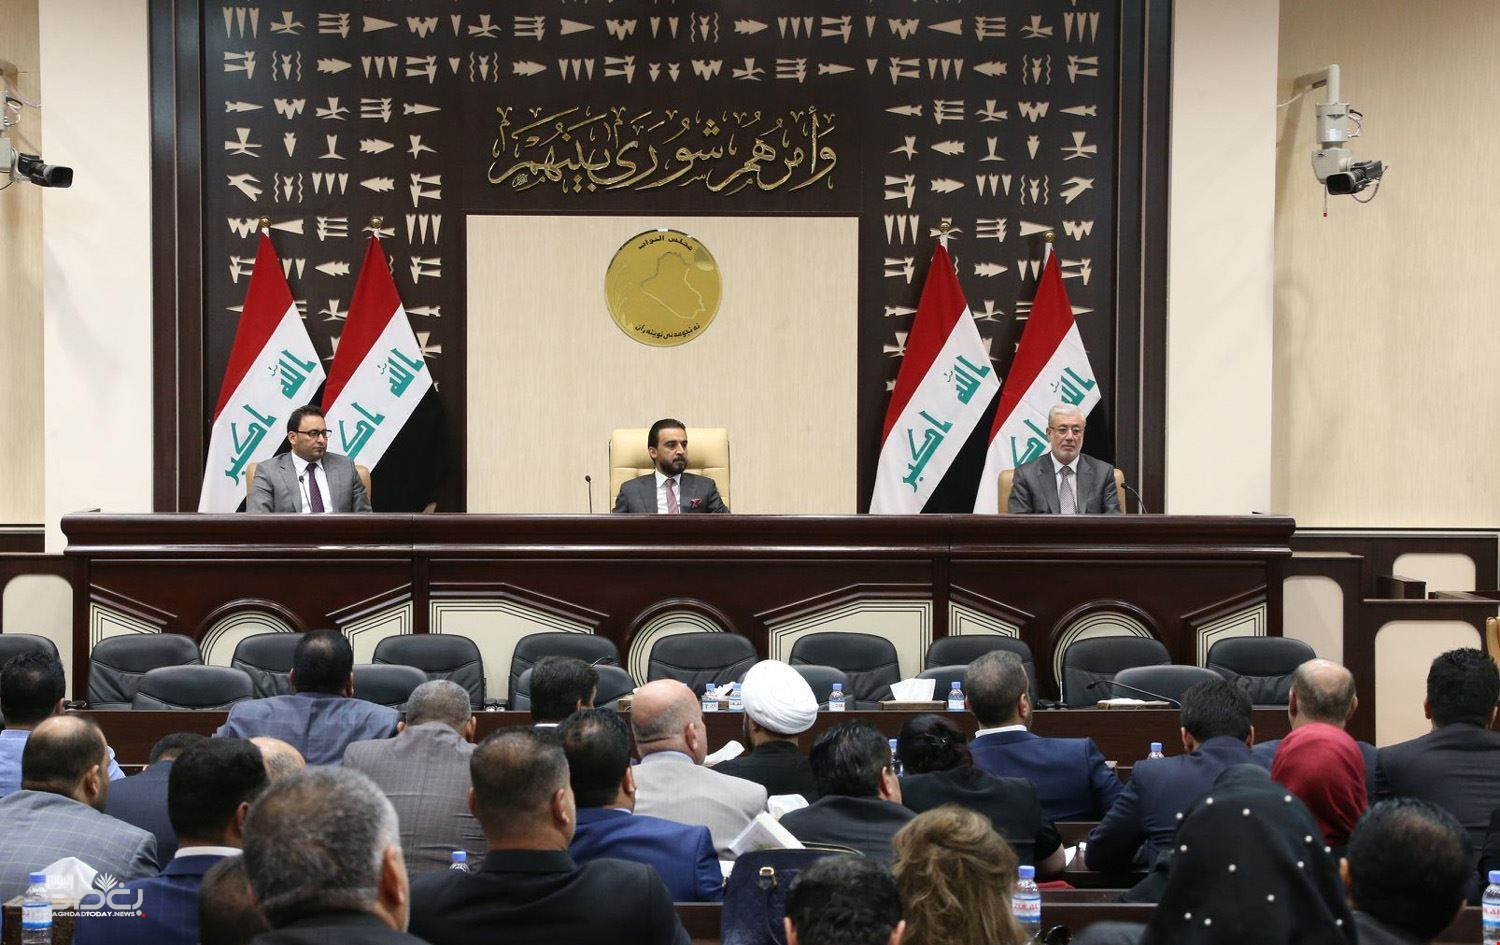 The revelation of a new Shiite bloc to form the largest bloc and choose the prime minister